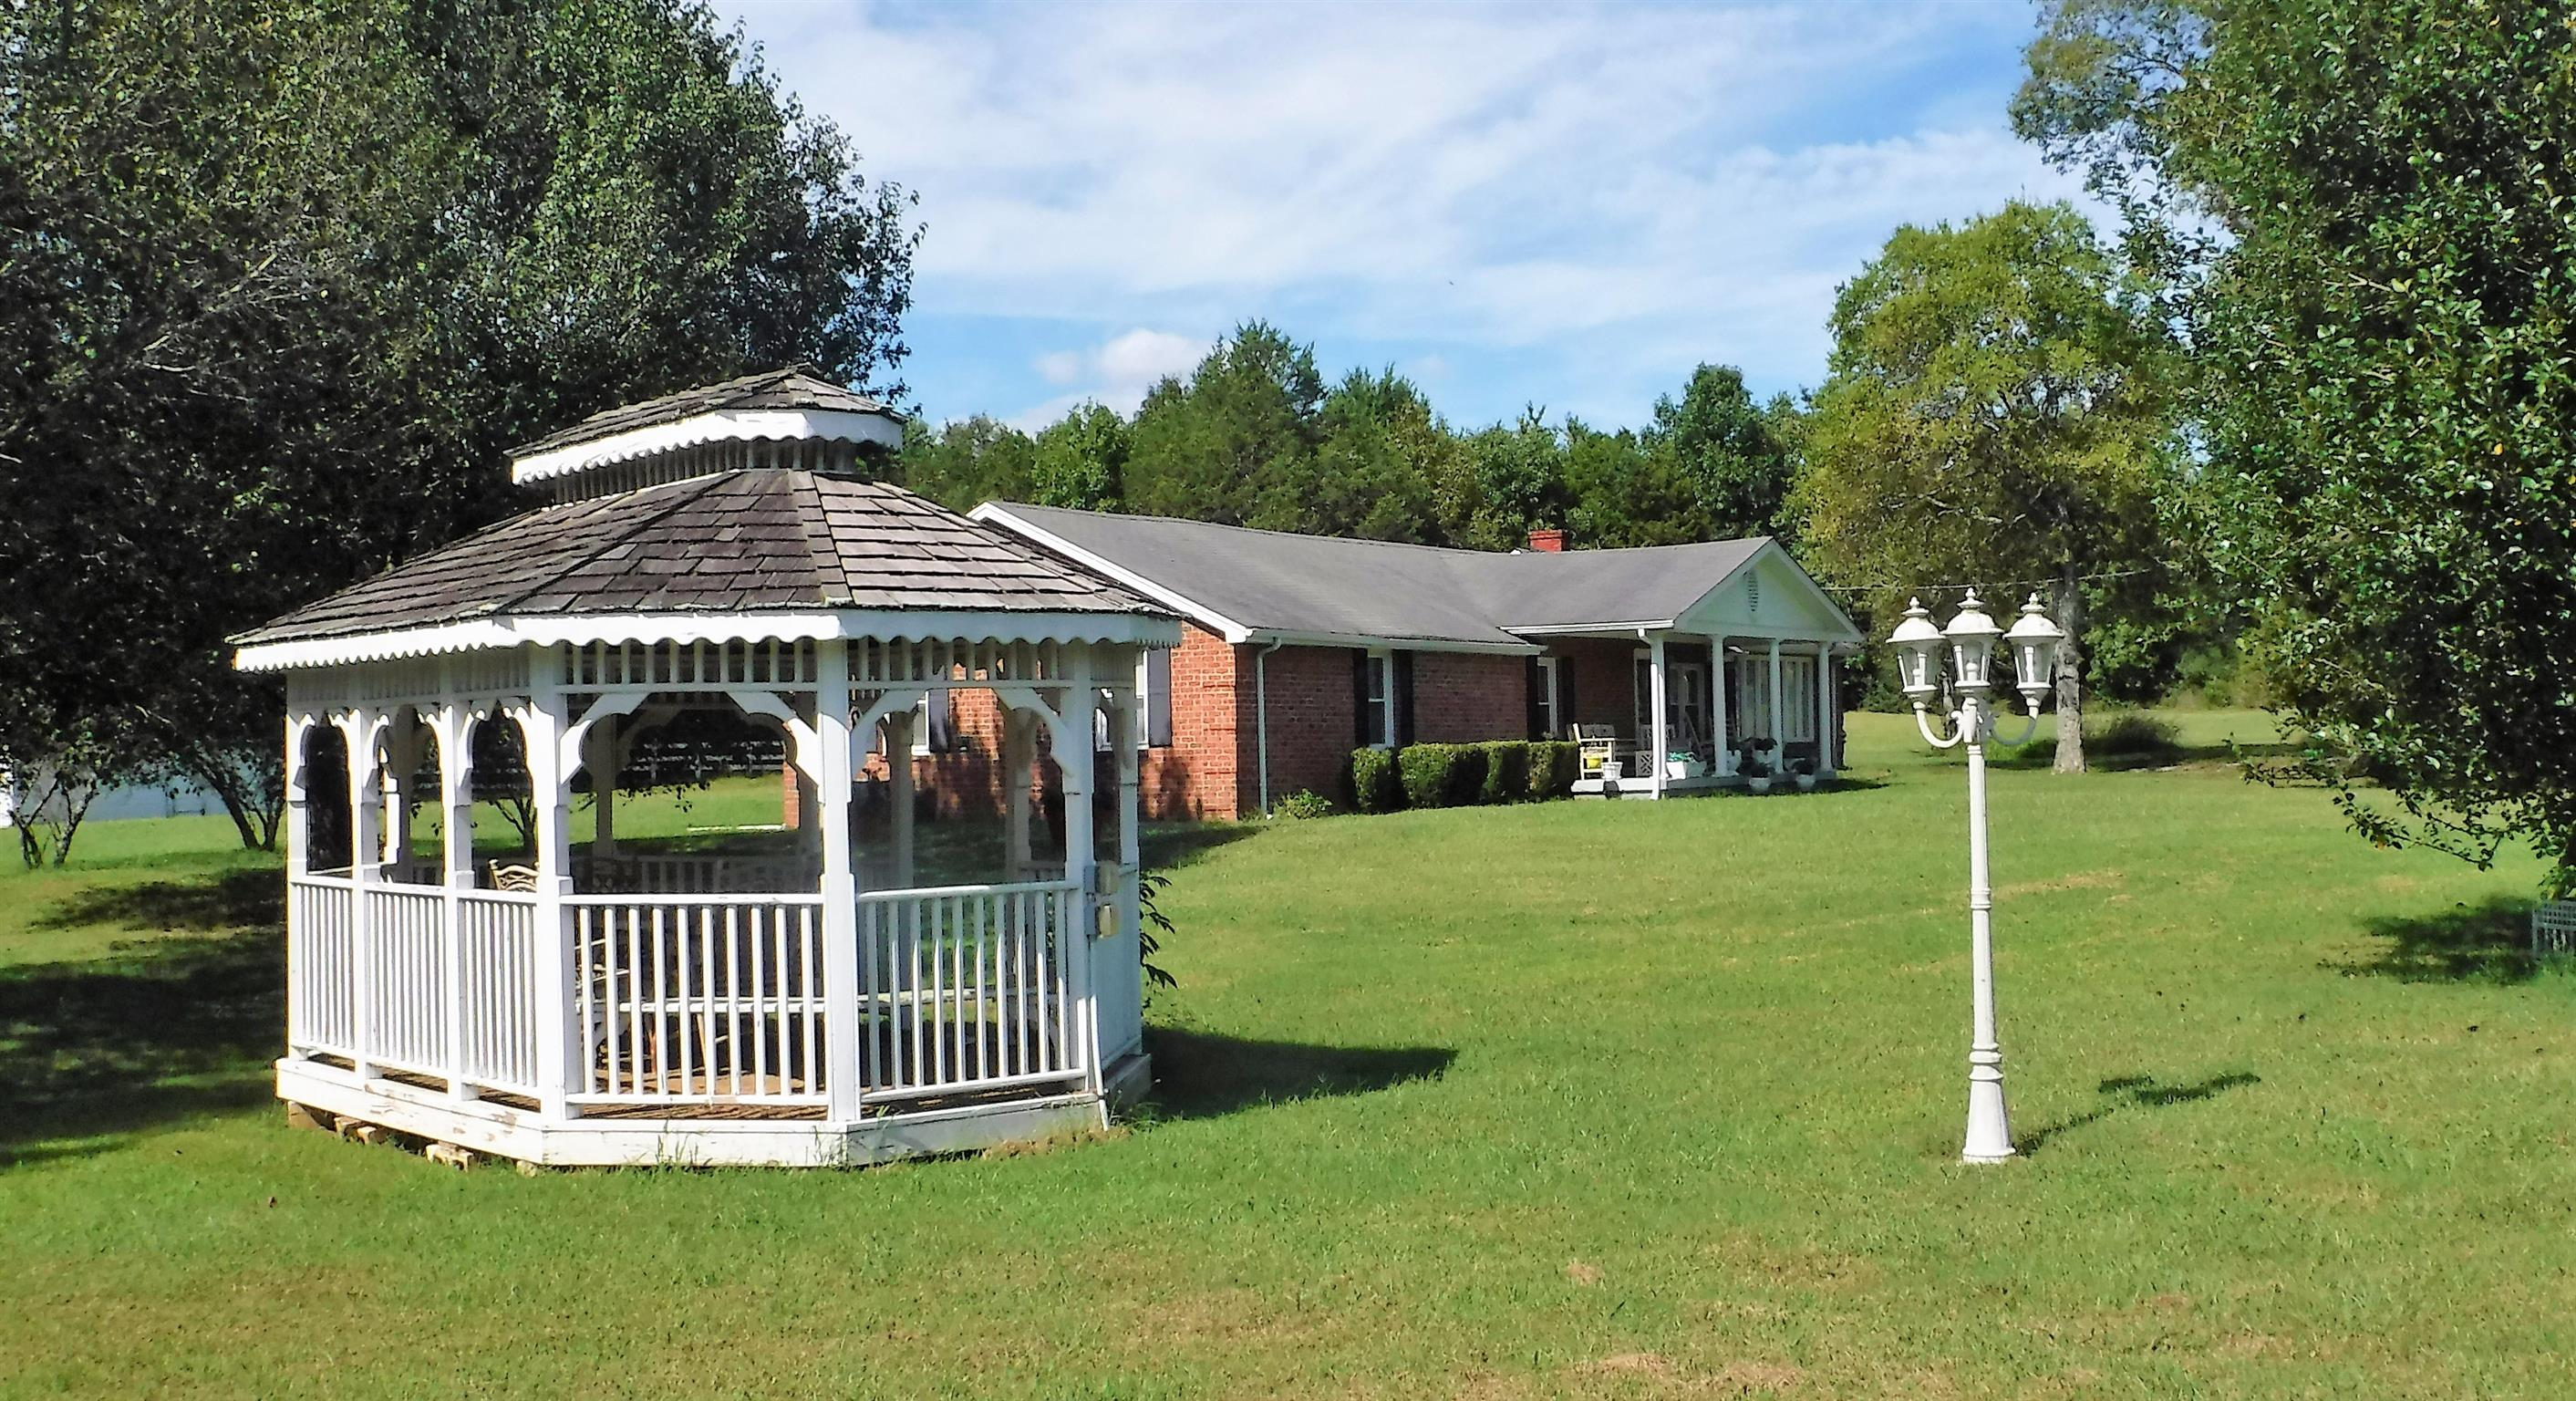 $3,500,000 - 3Br/1Ba -  for Sale in N/a, Murfreesboro